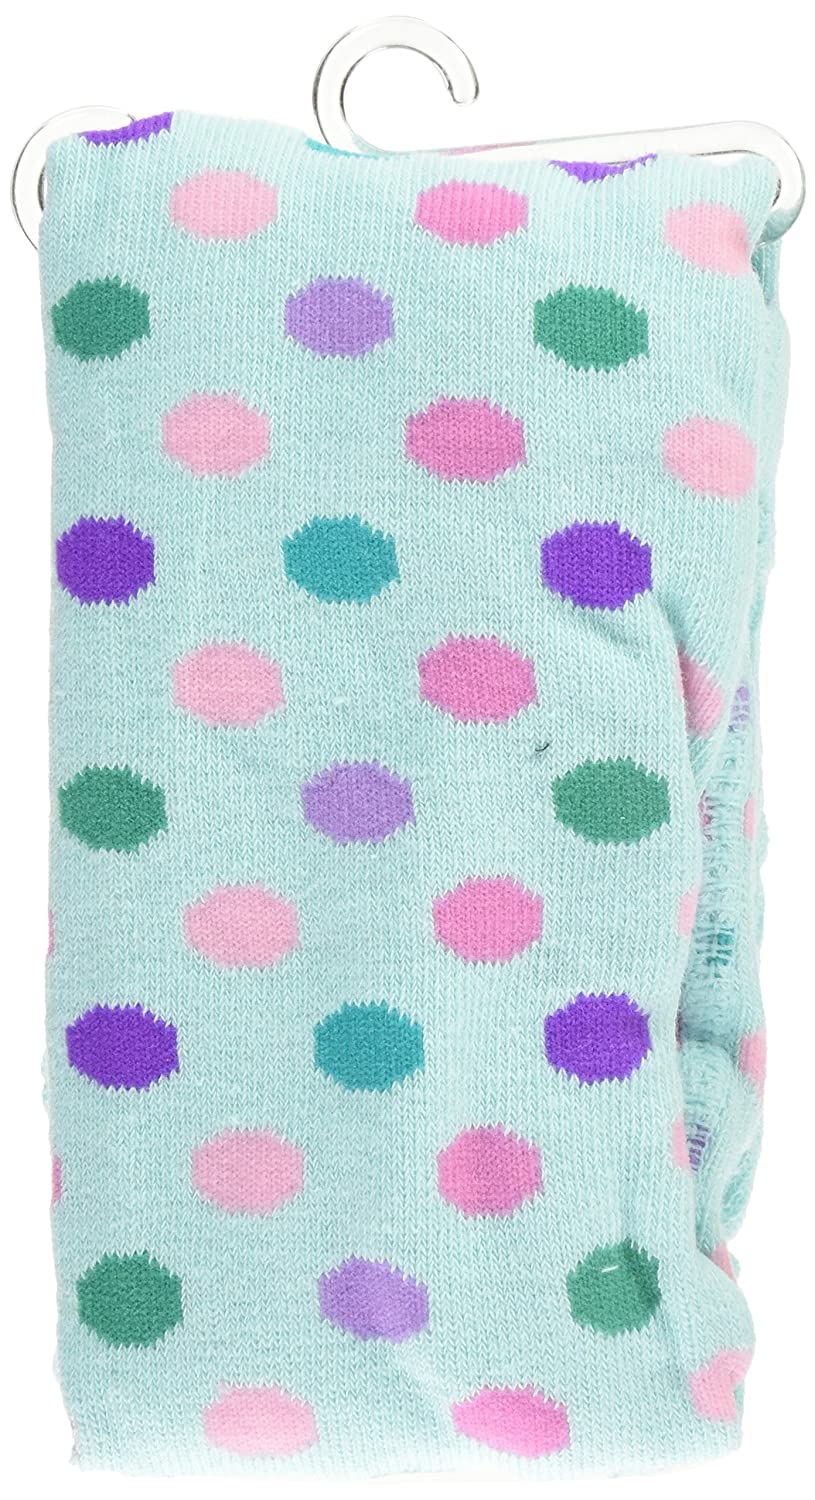 BabyLegs Polka Party-Footless Tights, Green/Pink/Purple, 2T-4T 924822girls